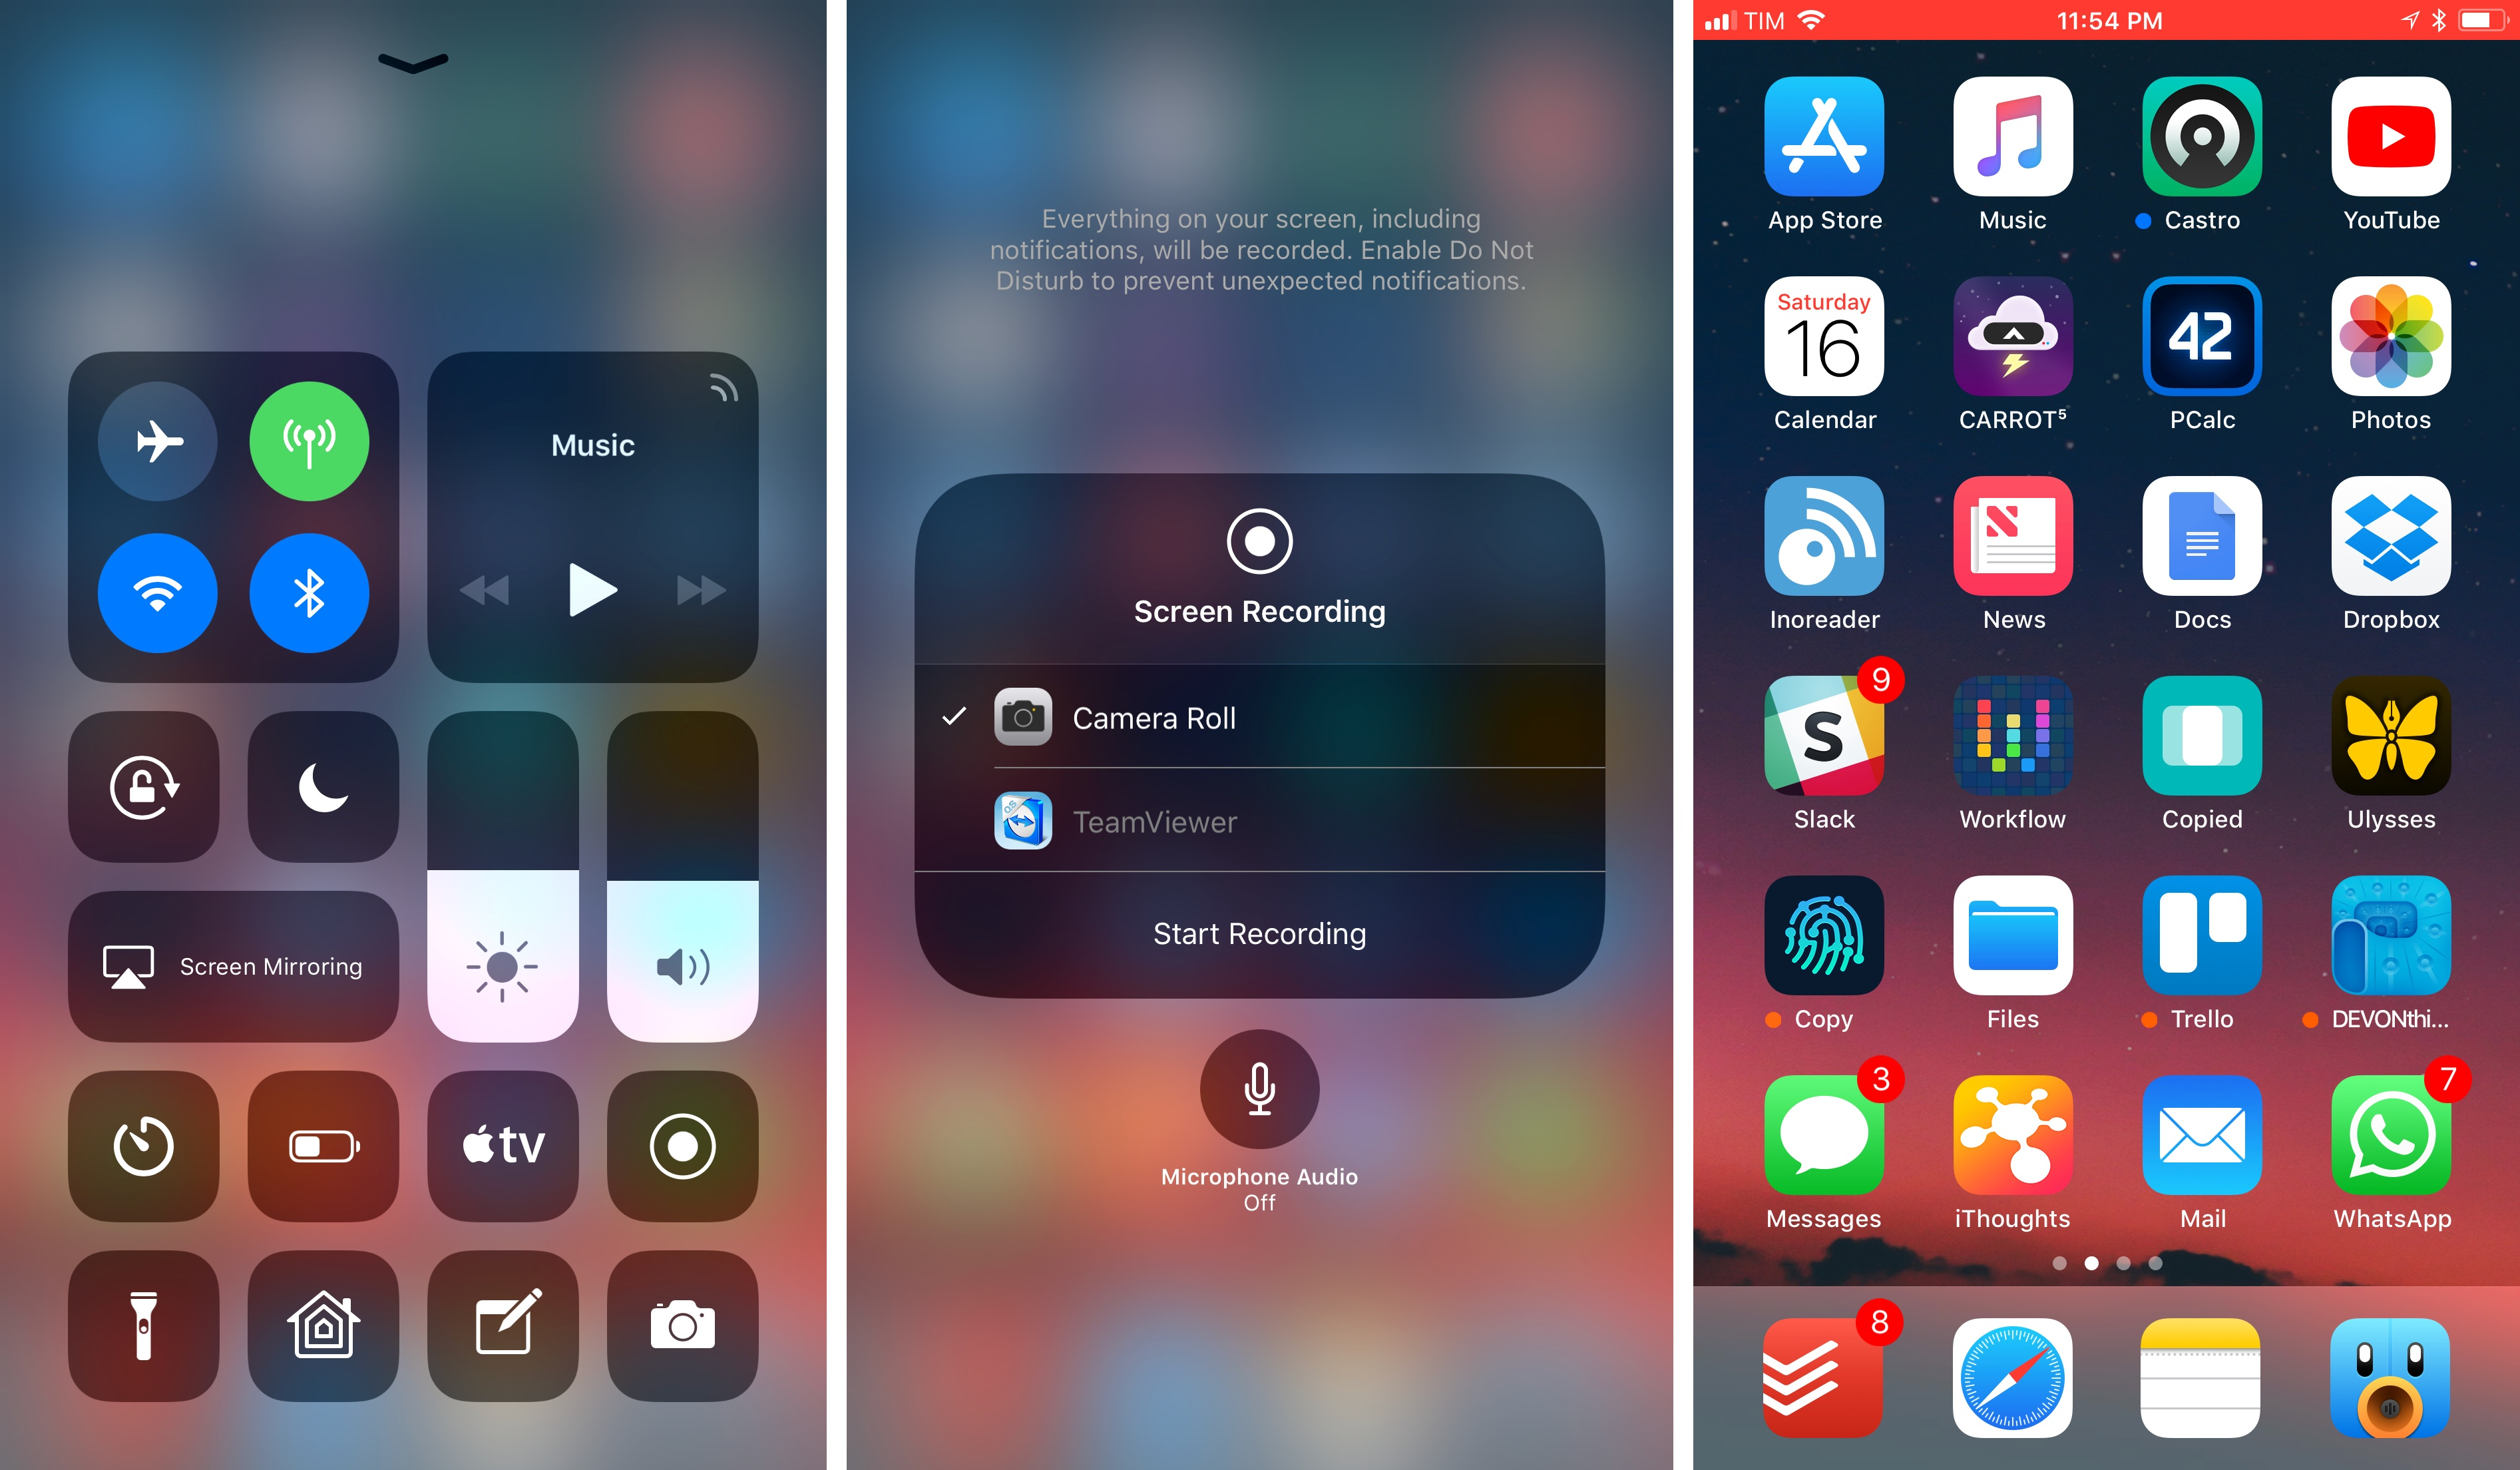 You can record your iOS device's screen from Control Center.